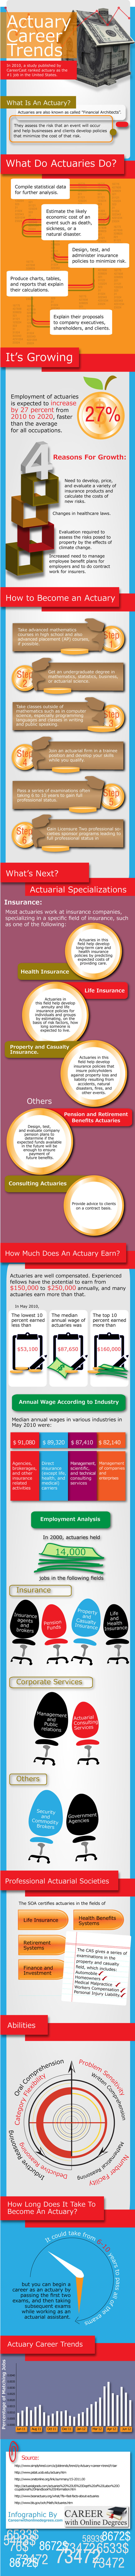 17 Best images about Actuary Career on Pinterest | Career ...